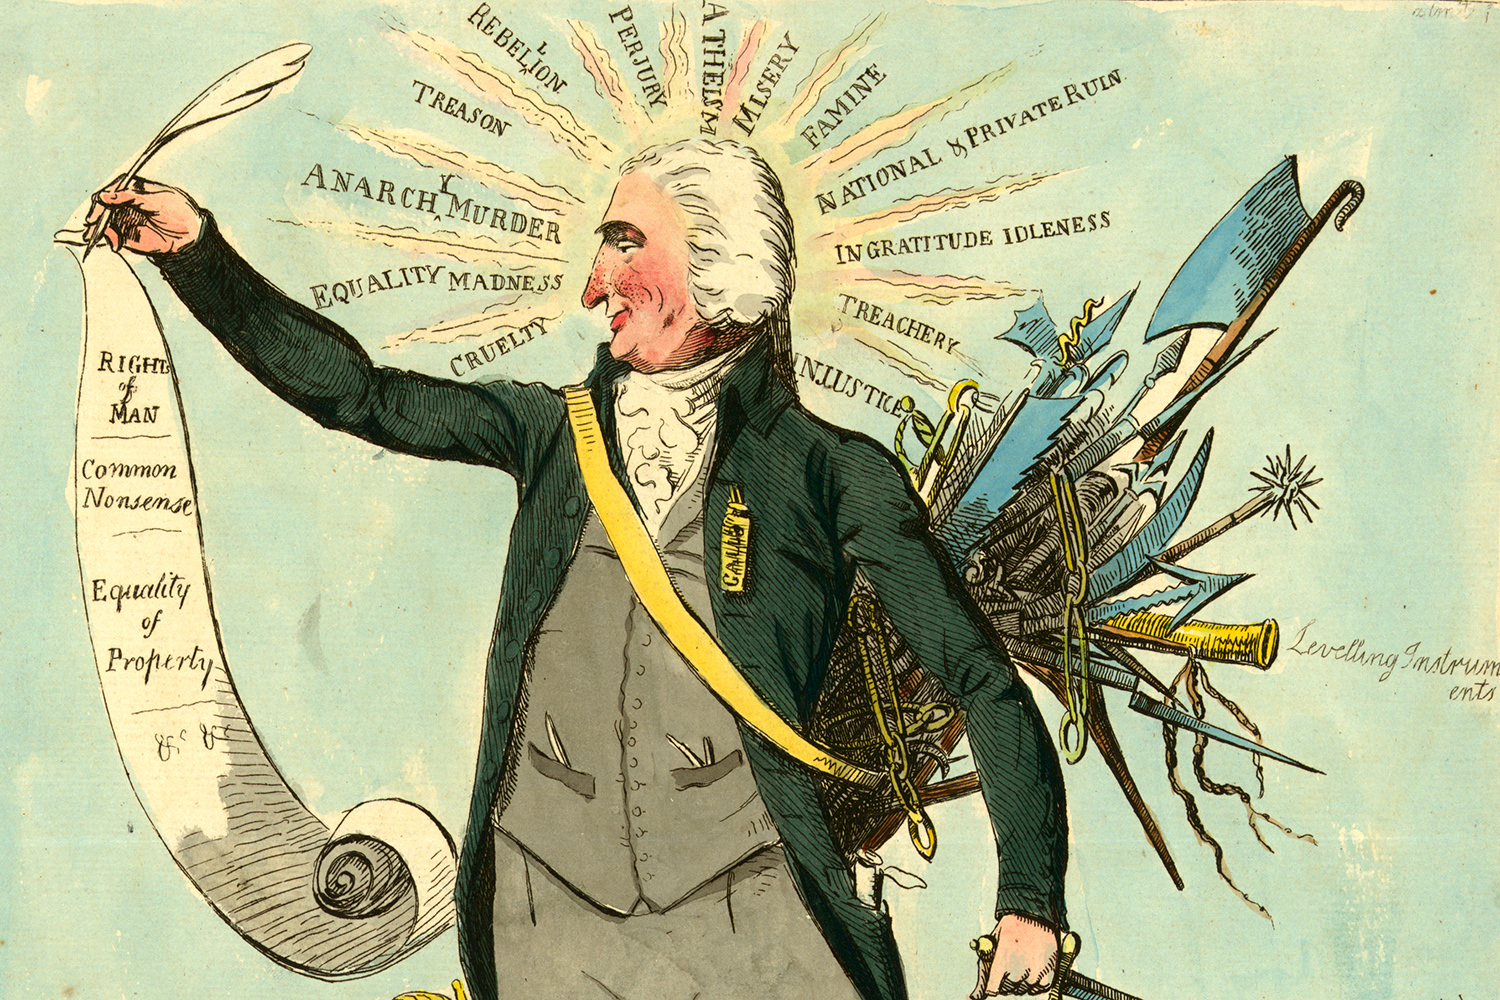 Caricature of Thomas Paine, unknown artist, 26 December 1792.